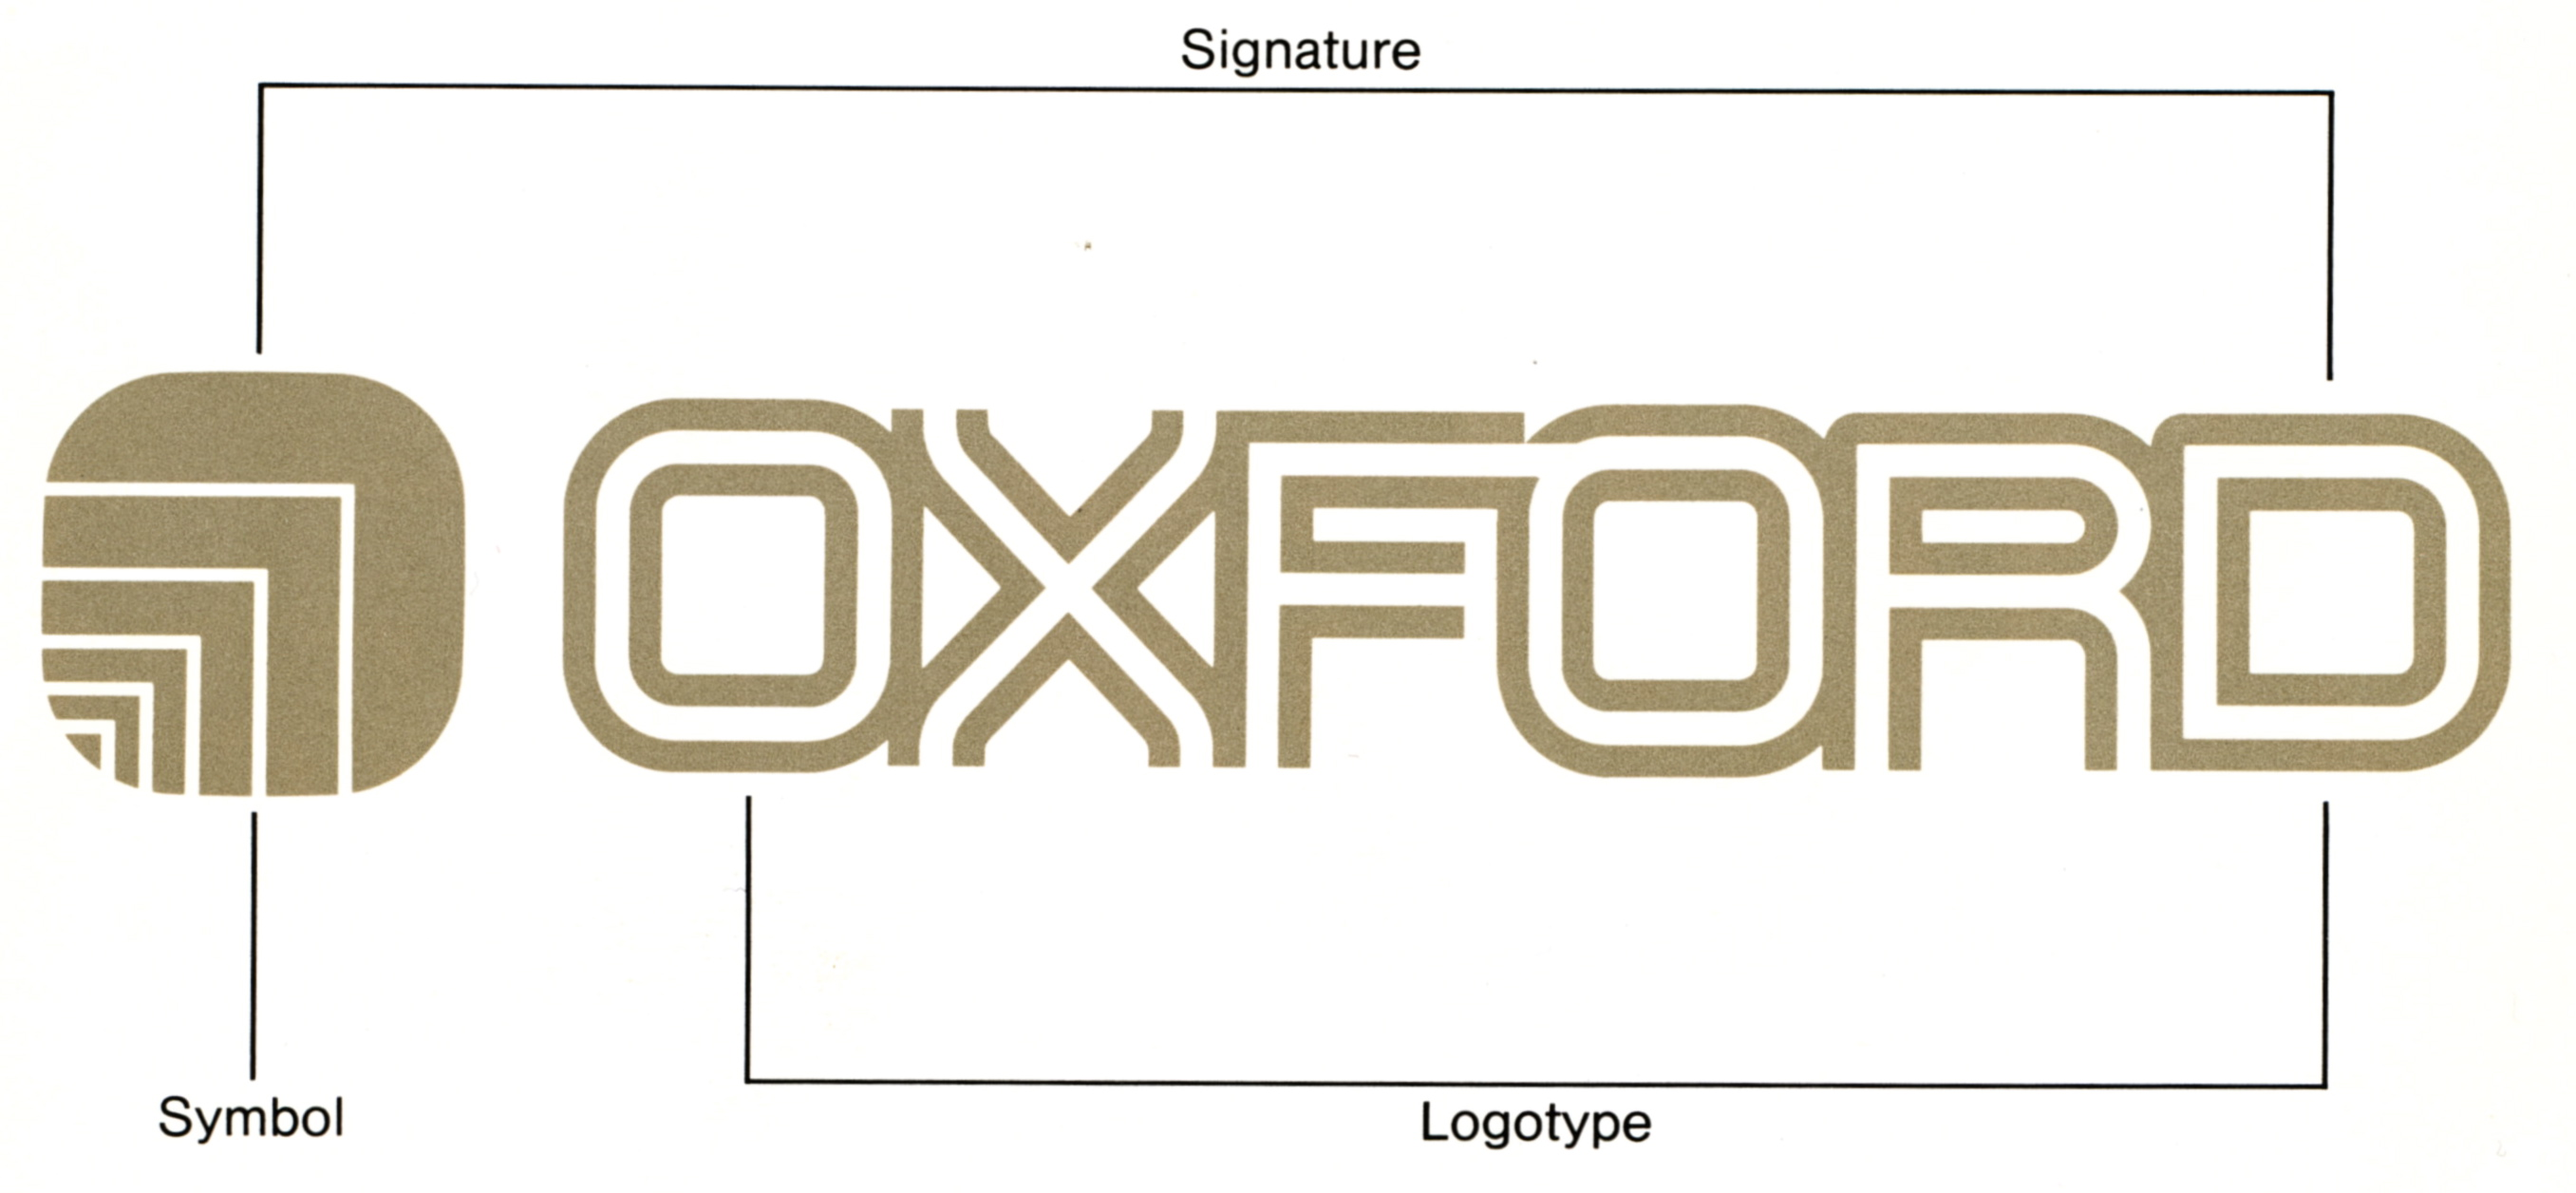 Logo and signature with details of its construction.